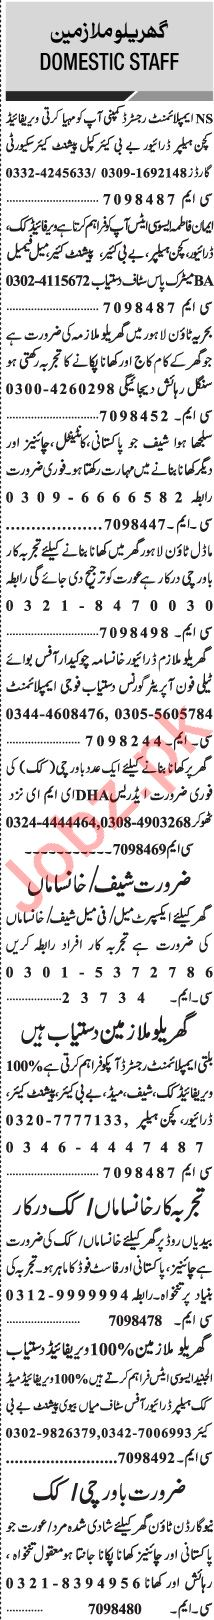 Jang Sunday Classified Ads 25 April 2021 for House Staff